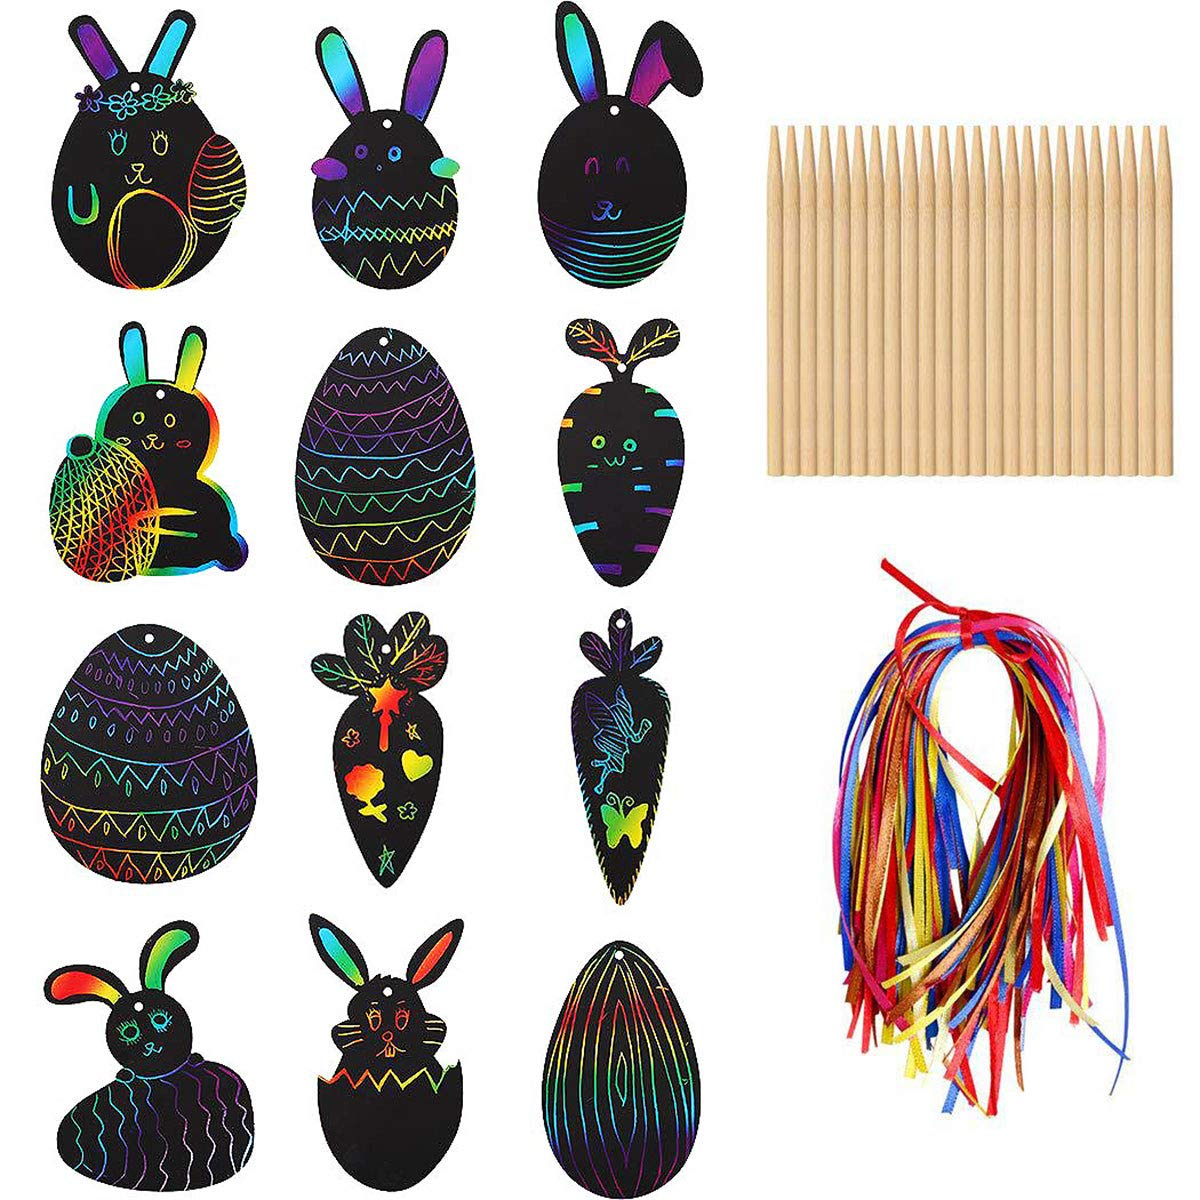 Easter Scratch Crafts Art Kit Magic Colorful Rainbow Scratch Paper Card Easter Egg Bunny Chick Shape with Ribbons Wooden Scratch Tools and Envelopes for Easter Party Egg Hunt Game Classroom Decoration